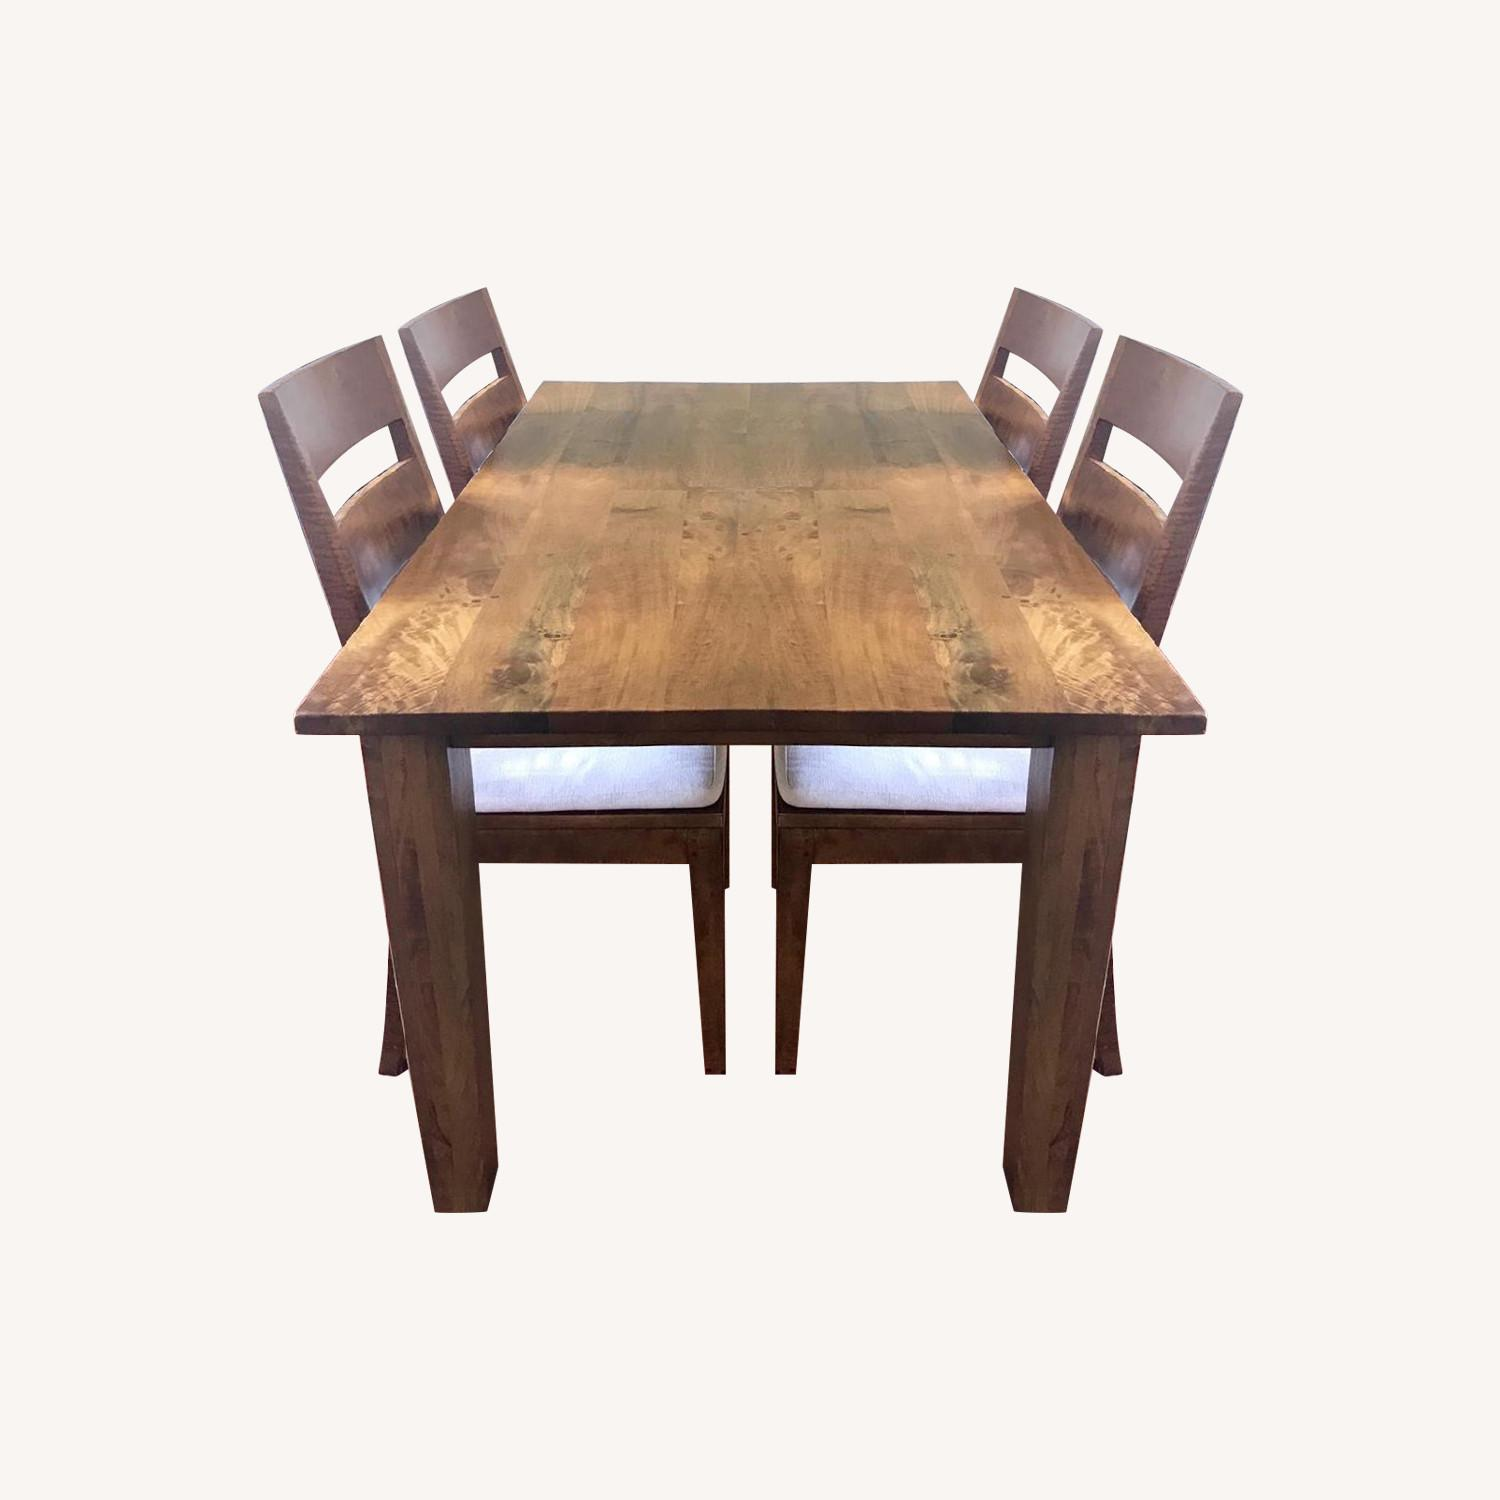 Crate & Barrel Basque Honey Dining Table w/ 4 Chairs - image-0